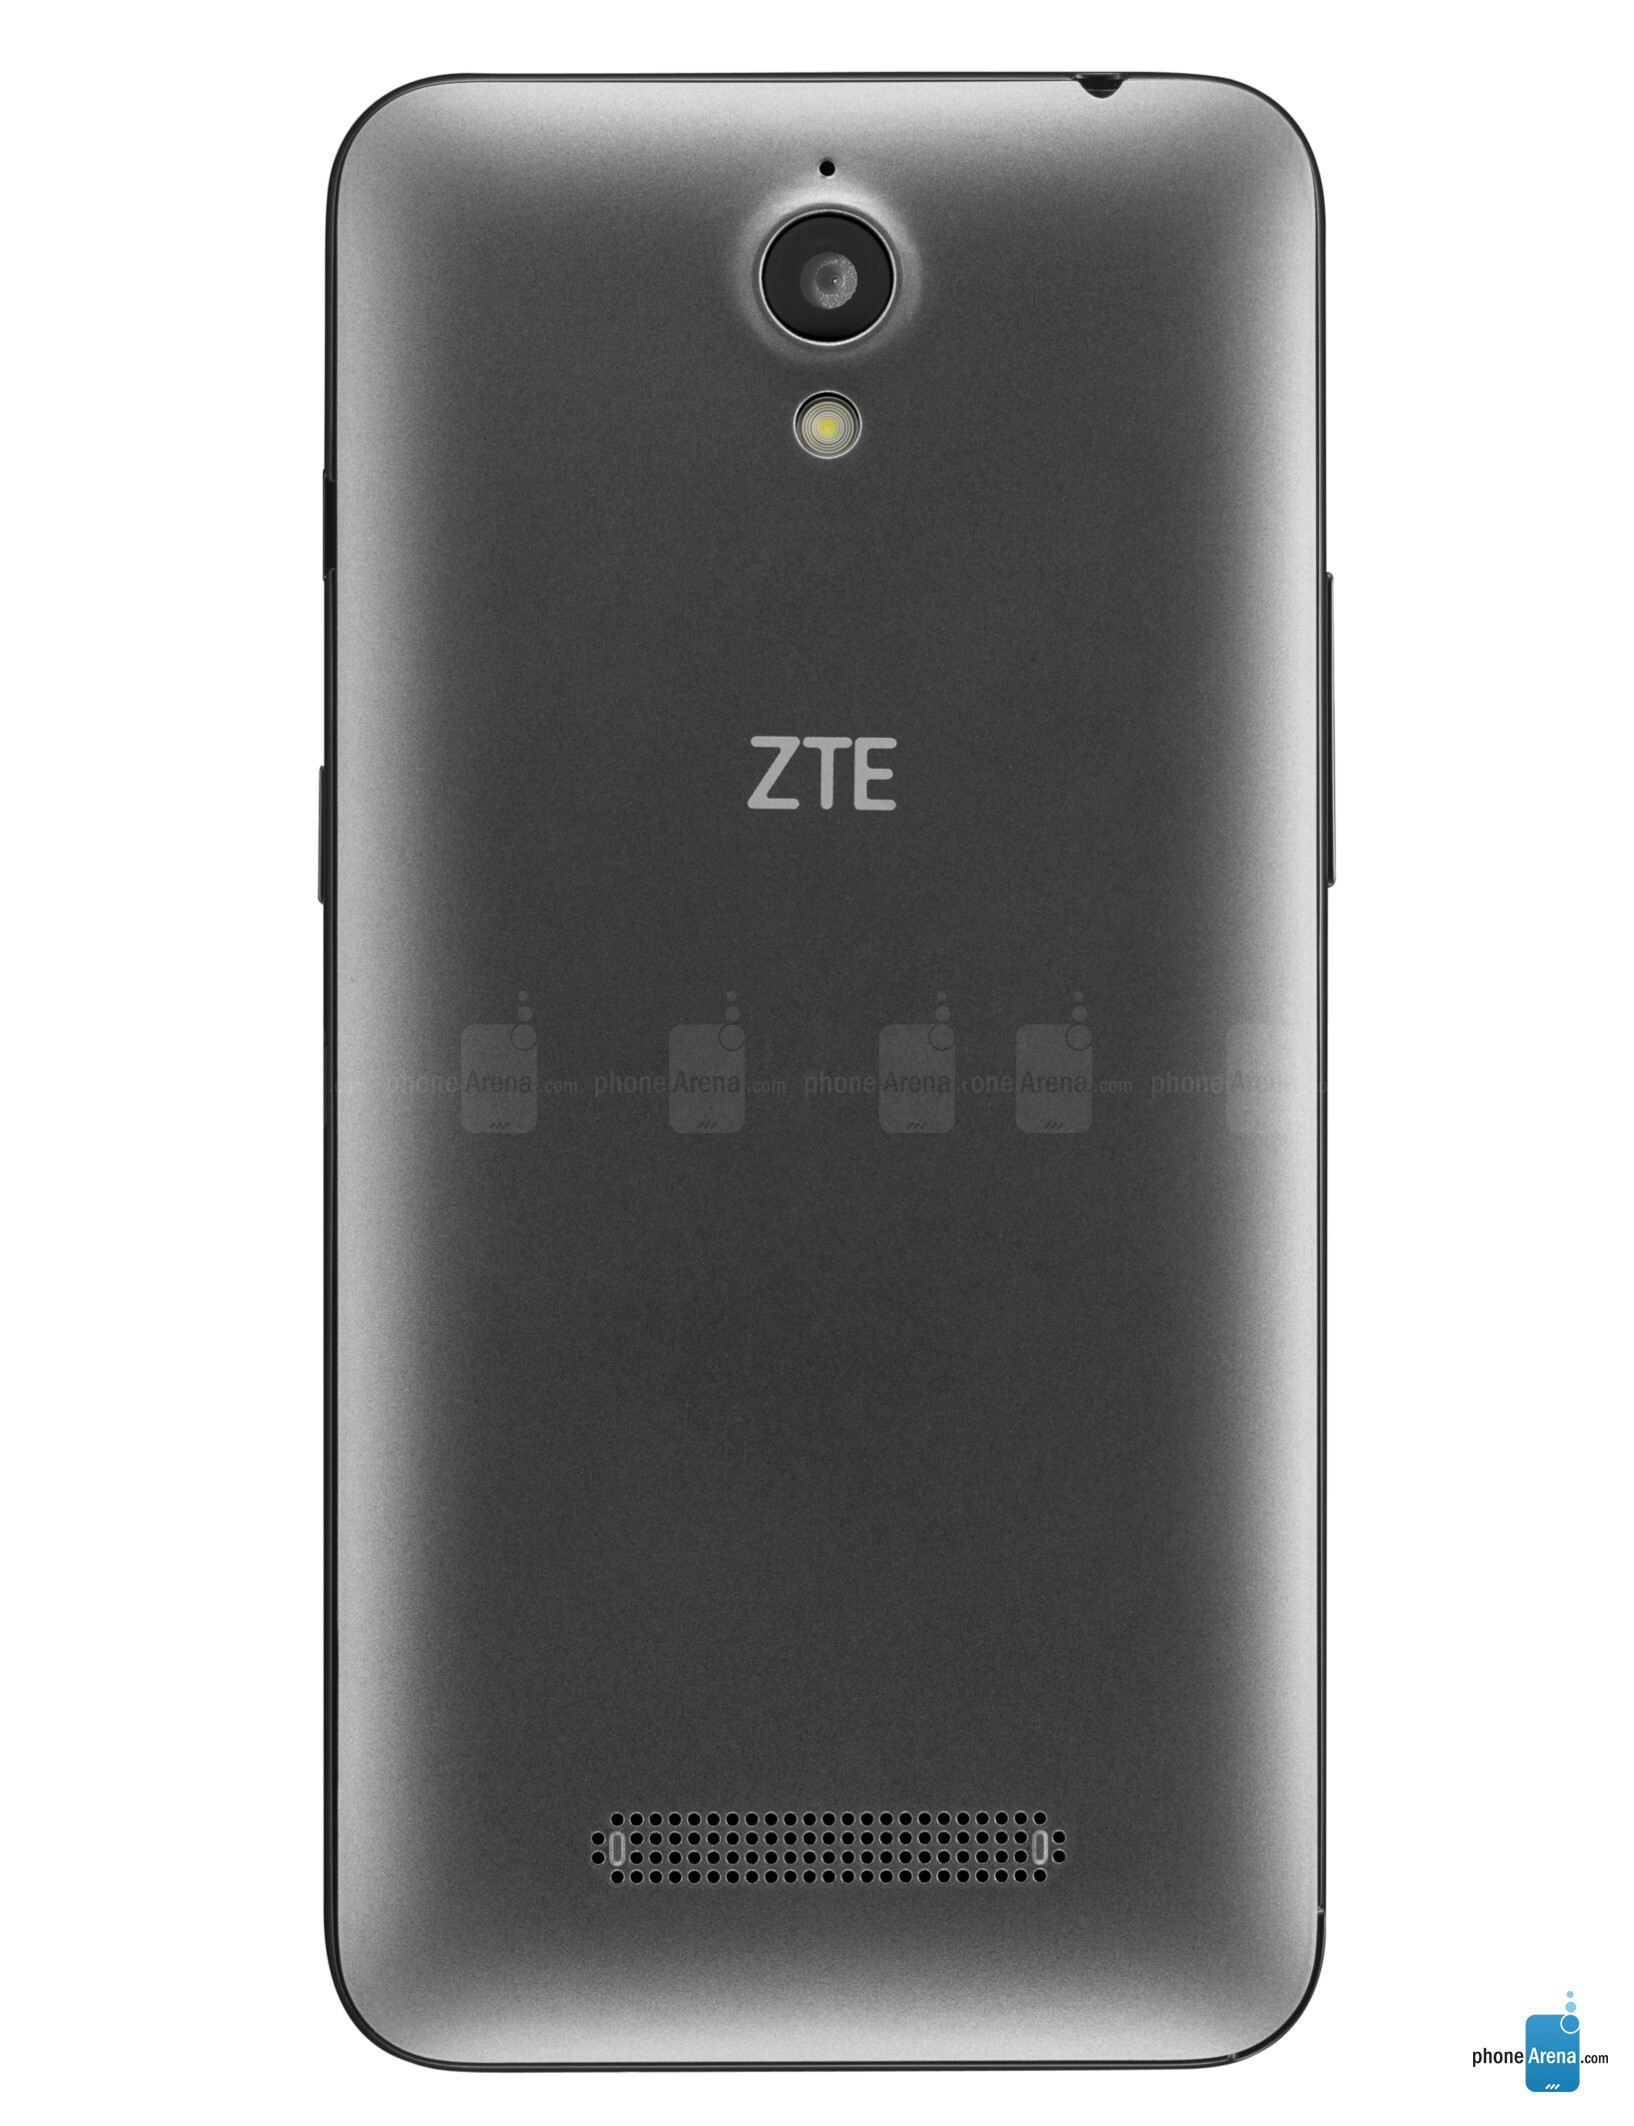 touring zte obsidian review Omnia features 240